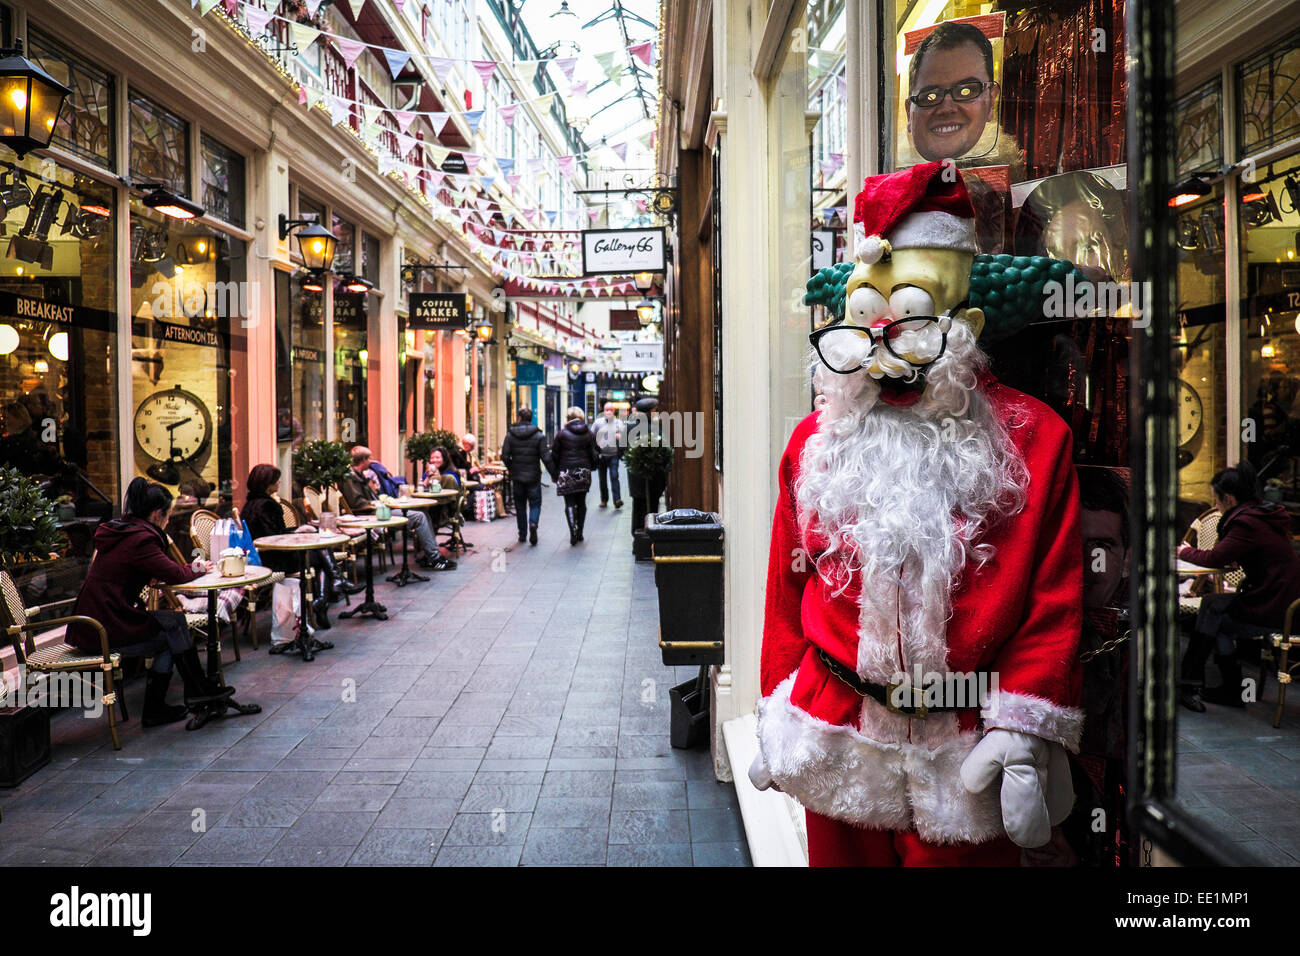 A scary looking Father Christmas outside a shop in Castle Arcade in Cardiff. - Stock Image